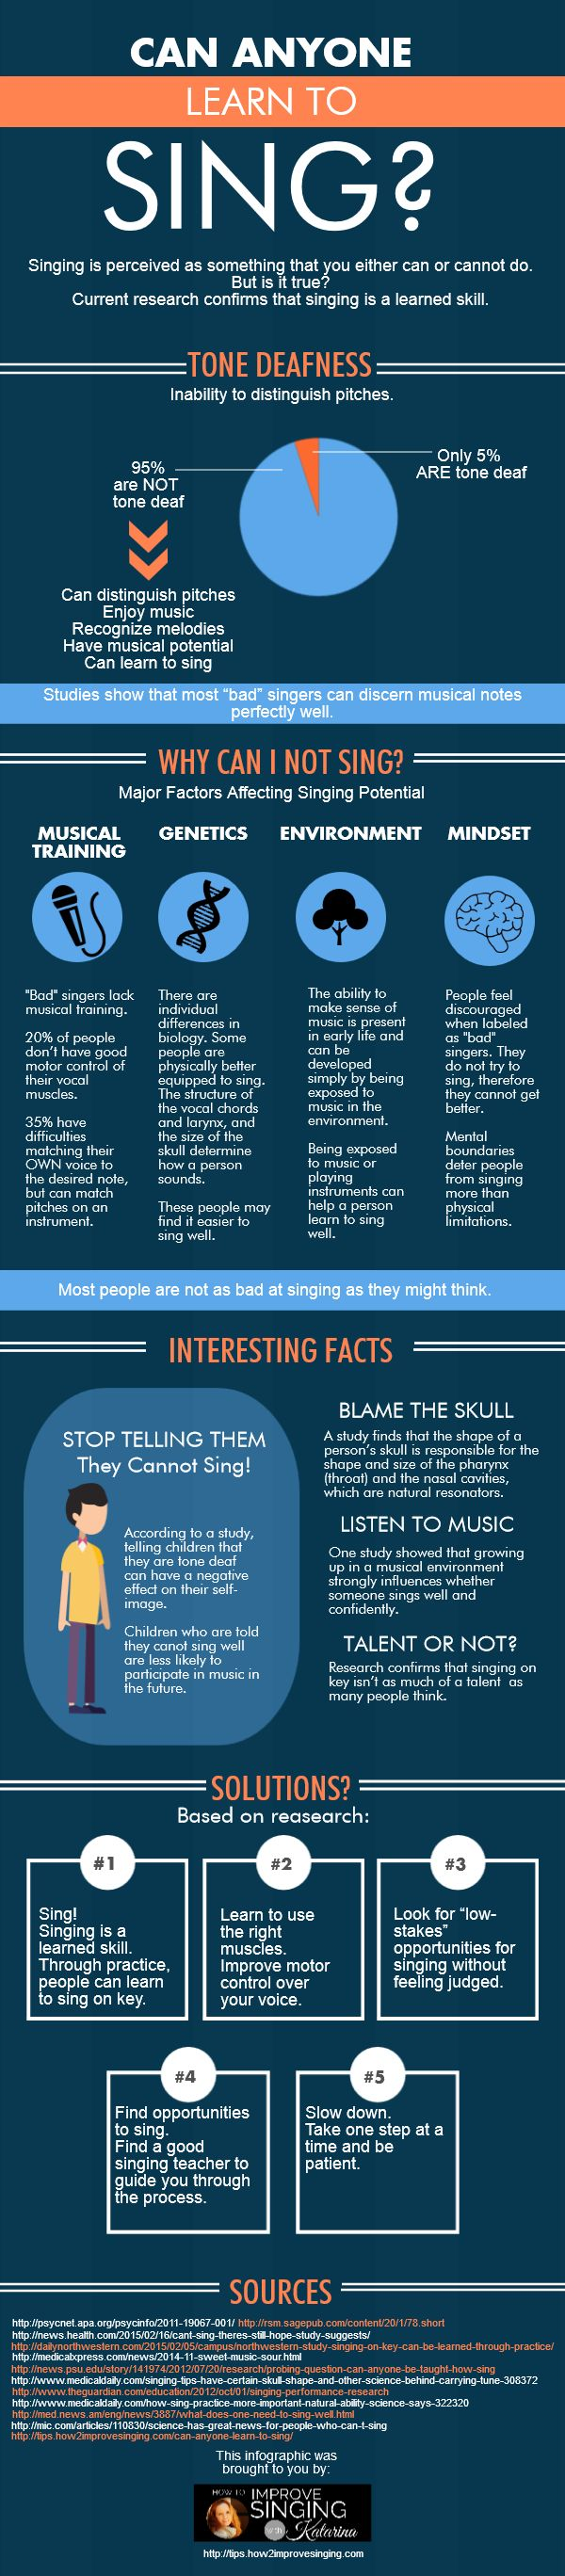 """This infographic """"Can Anyone Learn to Sing?"""" brings good news to new singers who wonder if they are able to improve their singing. The infographic summarizes results from various research studies to show that singing is a learned skill. Singing is perceived as something that people either can or cannot do. But the science supports the idea that almost everyone can learn how to sing. There is only a small number of people who are truly tone deaf.  #infographic"""